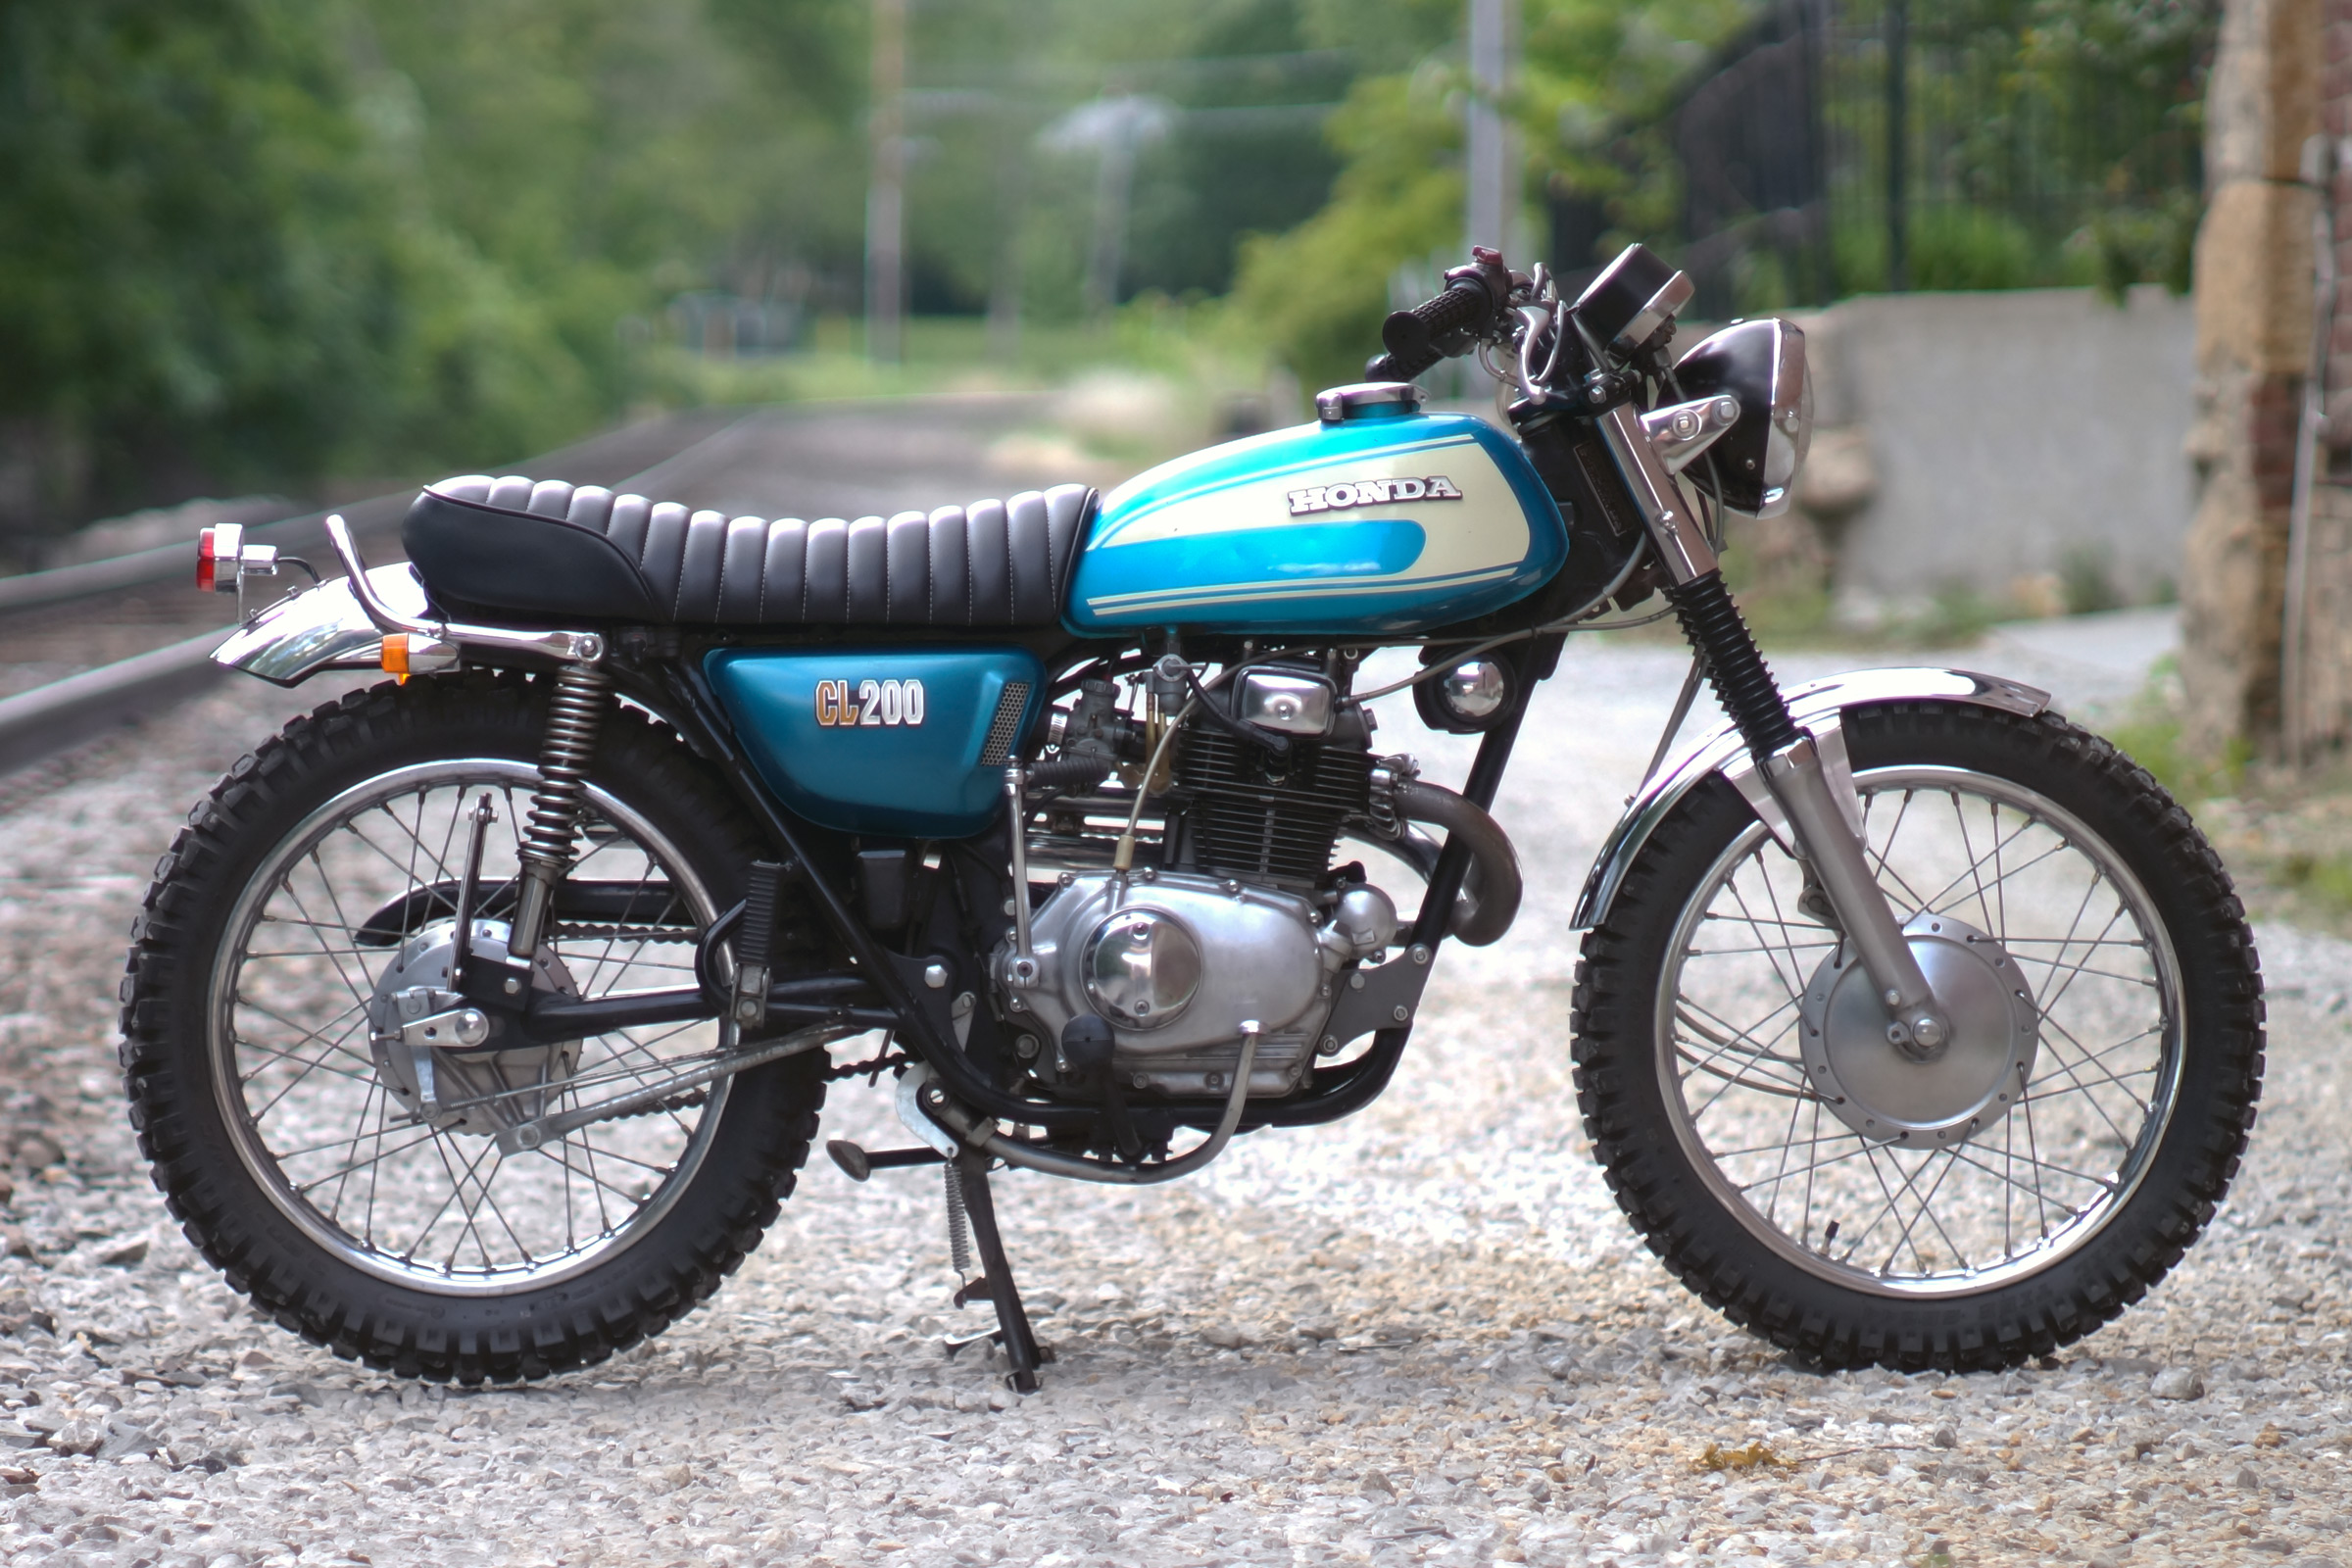 Vintage Scrambler Build Part 2 Dan 183 Nix